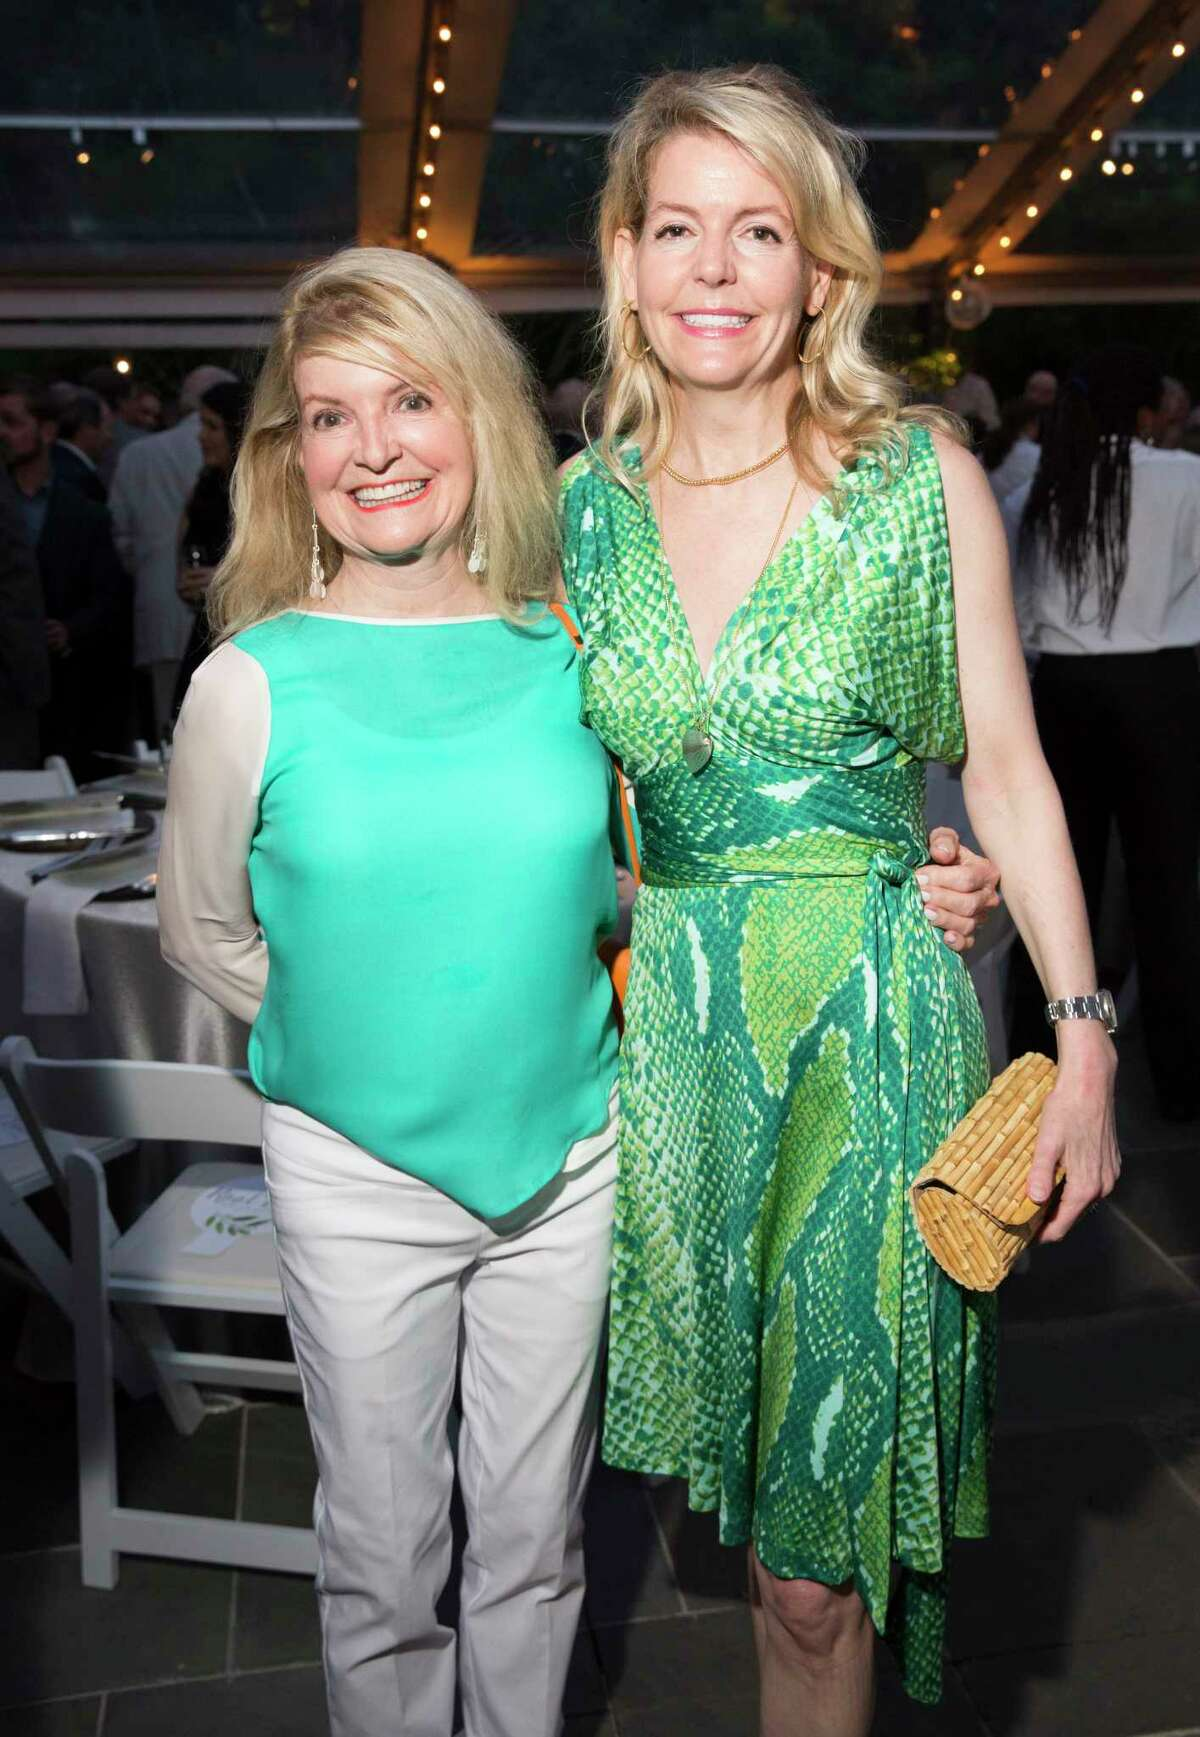 Cora Bess Meyer, left, pose for a photograph with daughter, Michelle Foutch, at the 25th Annual Trees for Houston Root Ball at The Bayou Club on Thursday, April 4, 2019, in Houston.